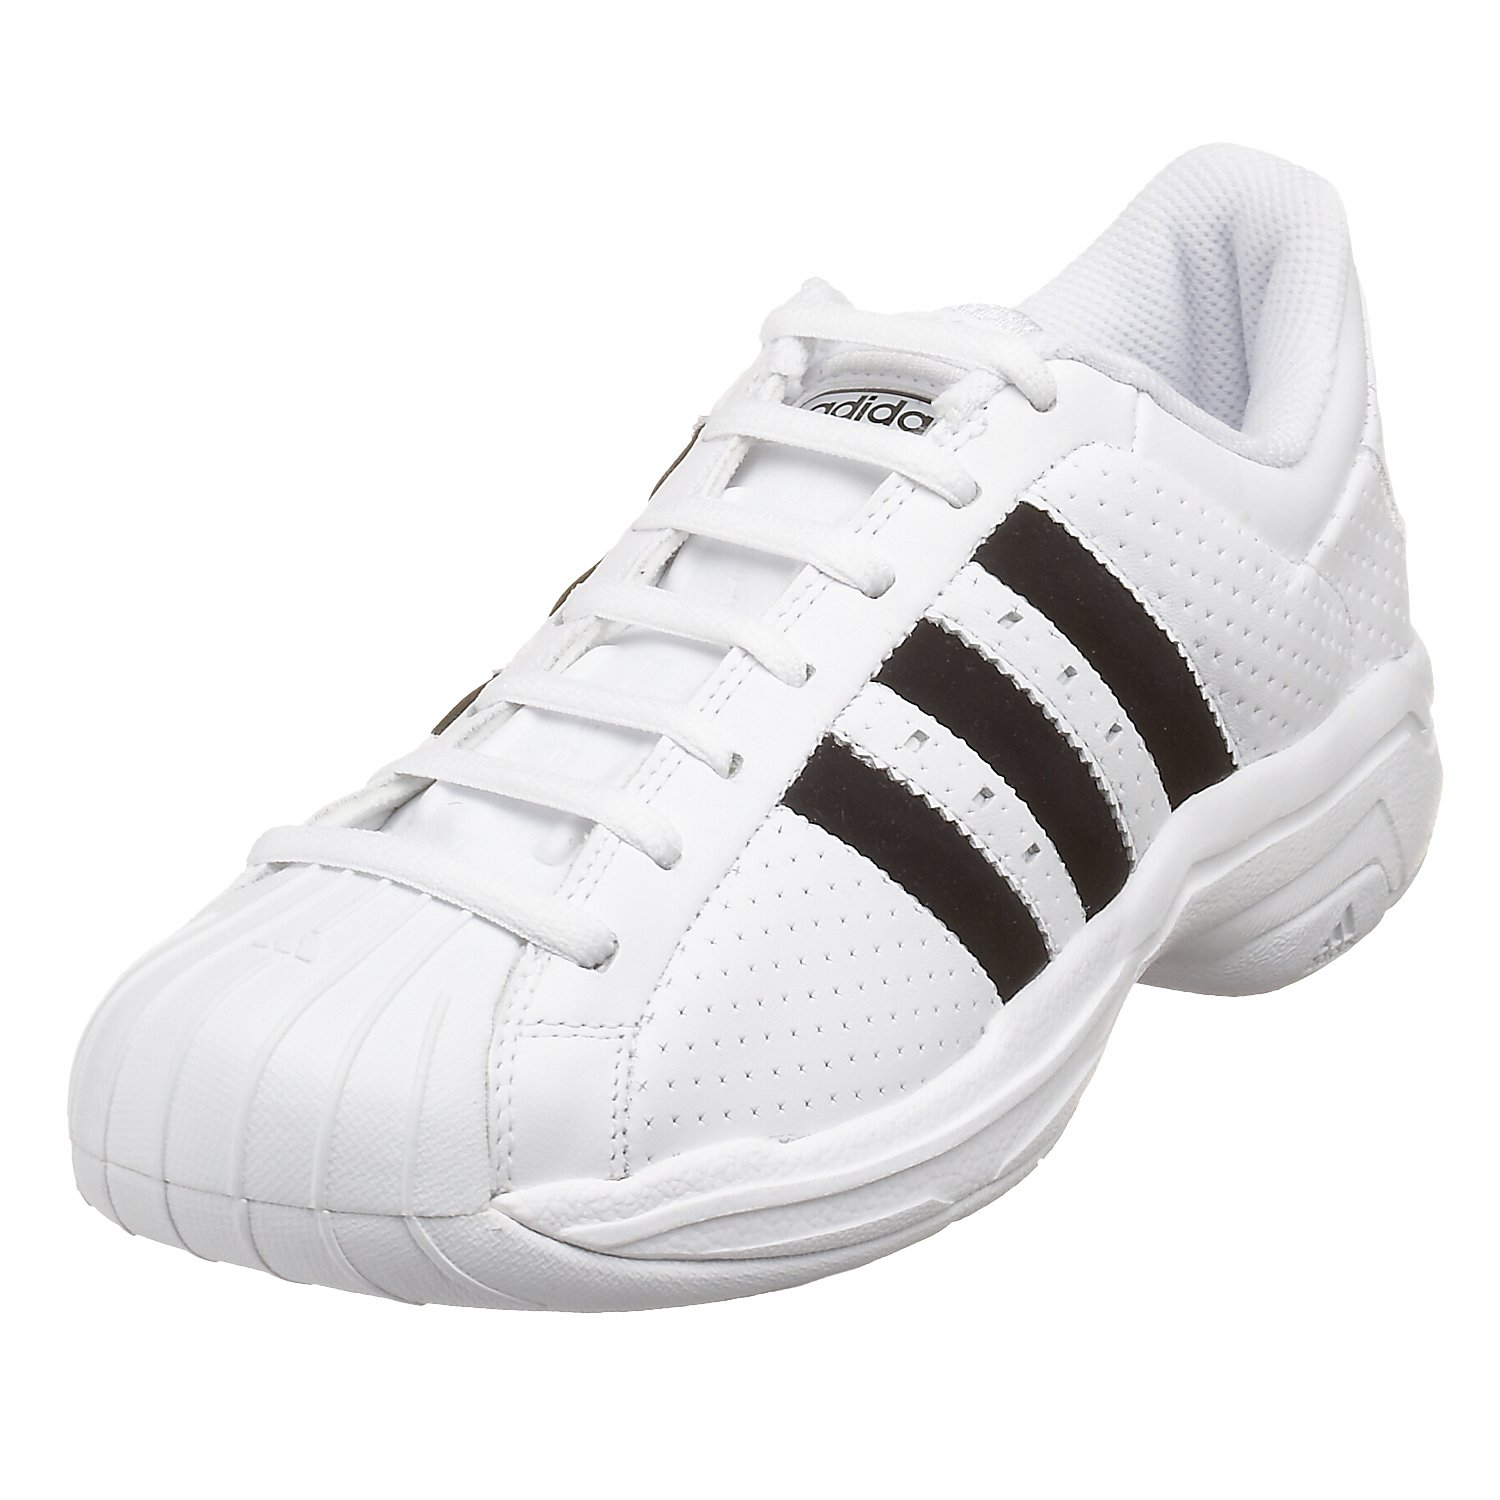 adidas Men's Superstar 2G Perf Basketball Shoe, White/Black, 11 M